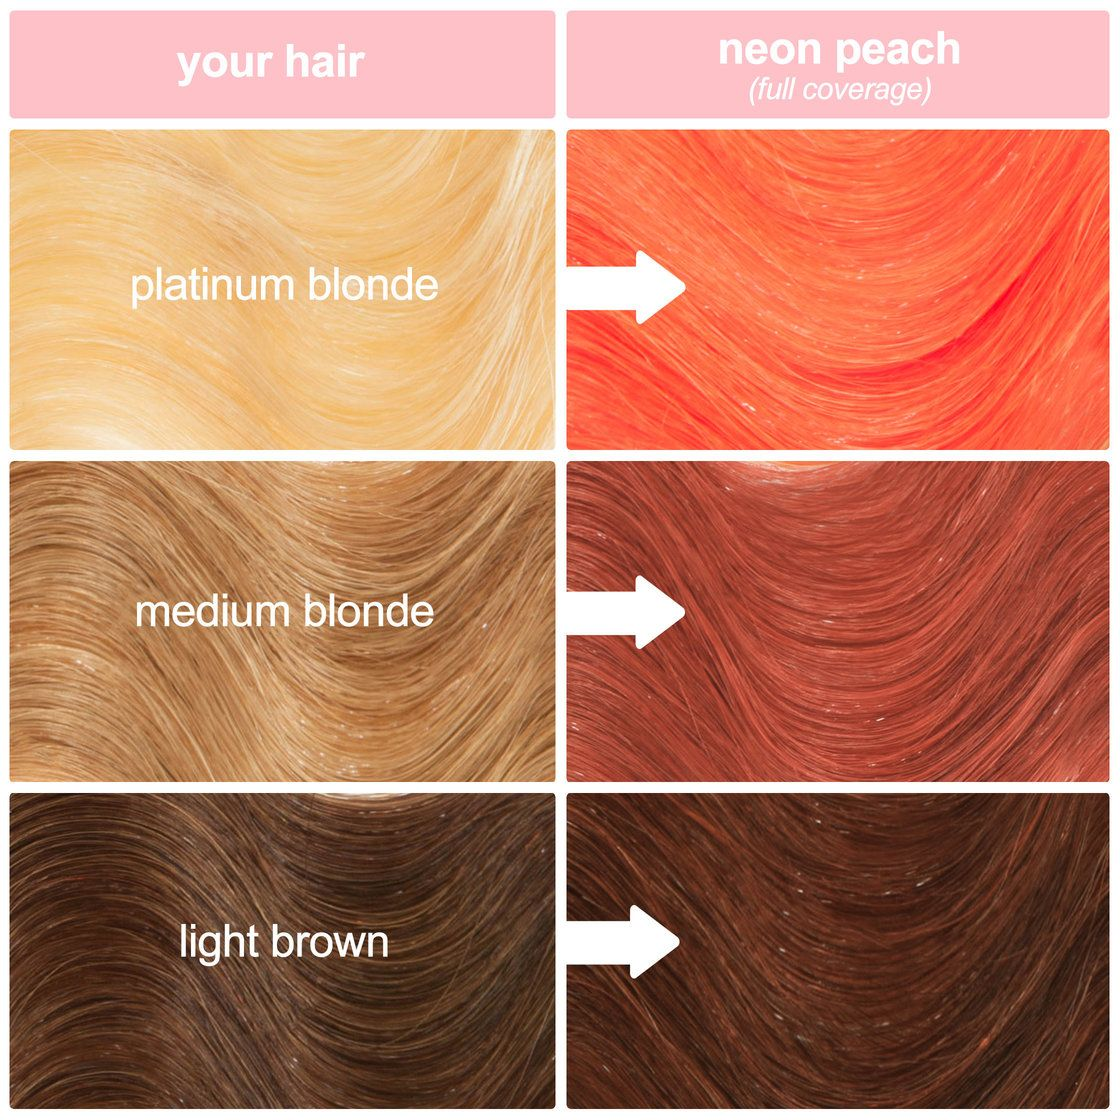 Neon Peach Hair Color Clean Vibrant Peach Peach Hair Colors